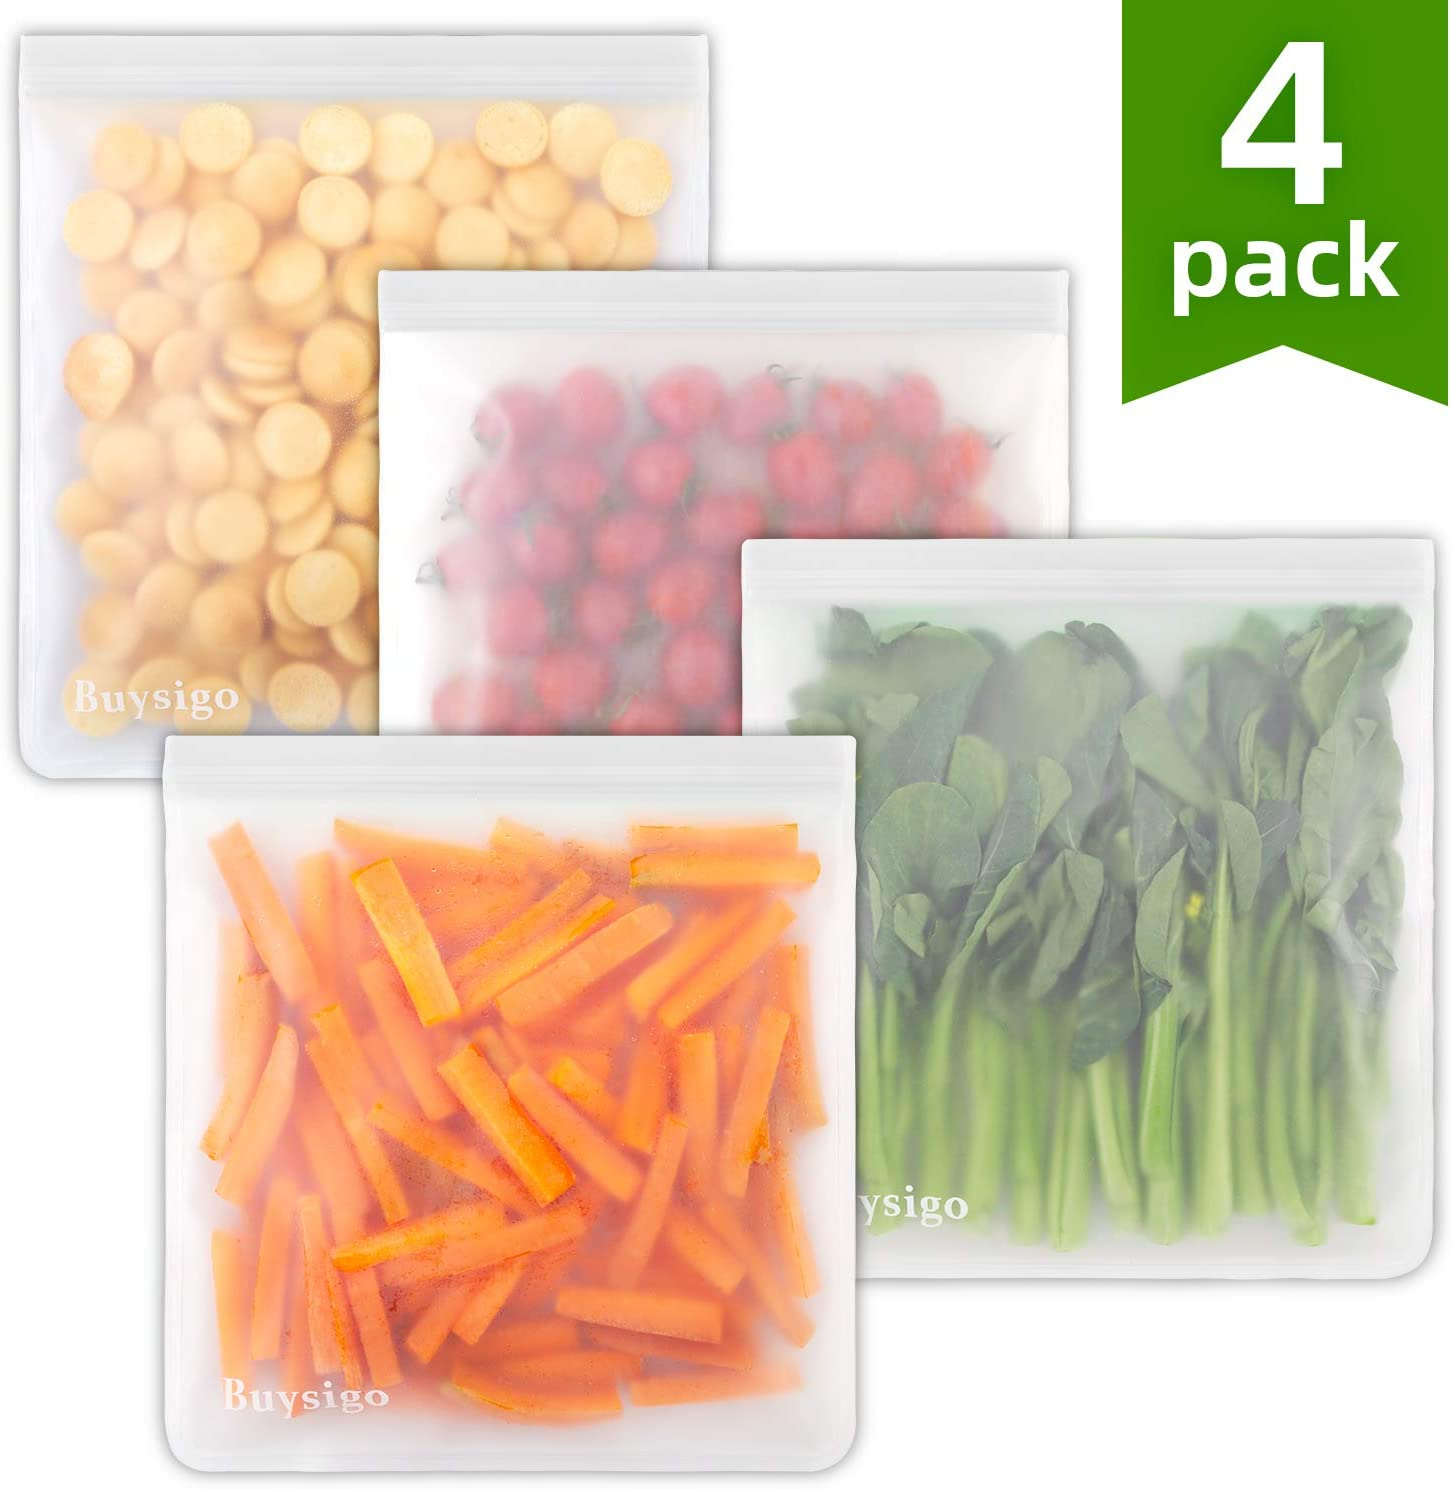 Reusable Gallon Storage Bags - 1 Gallon Leakproof Ziplock Bags for Marinate Meats, Snack,Cereal, Sandwich, Fruit, Travel Items, Meal Prep,BBQ, Home Organization(4pack)